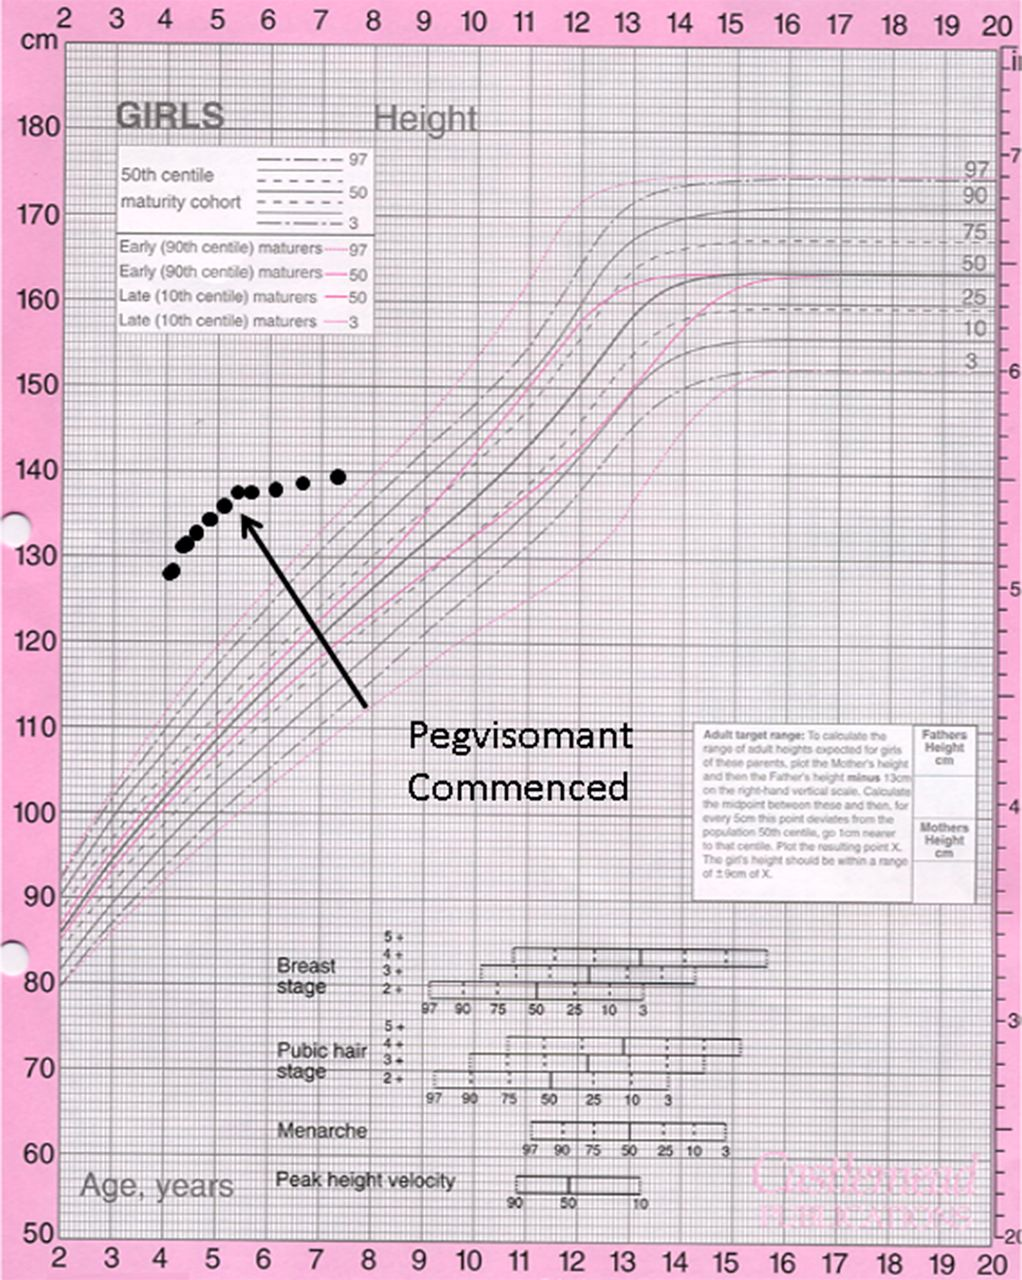 Investigation and management of tall stature archives of disease download figure open in new tab download powerpoint figure 3 growth chart nvjuhfo Images